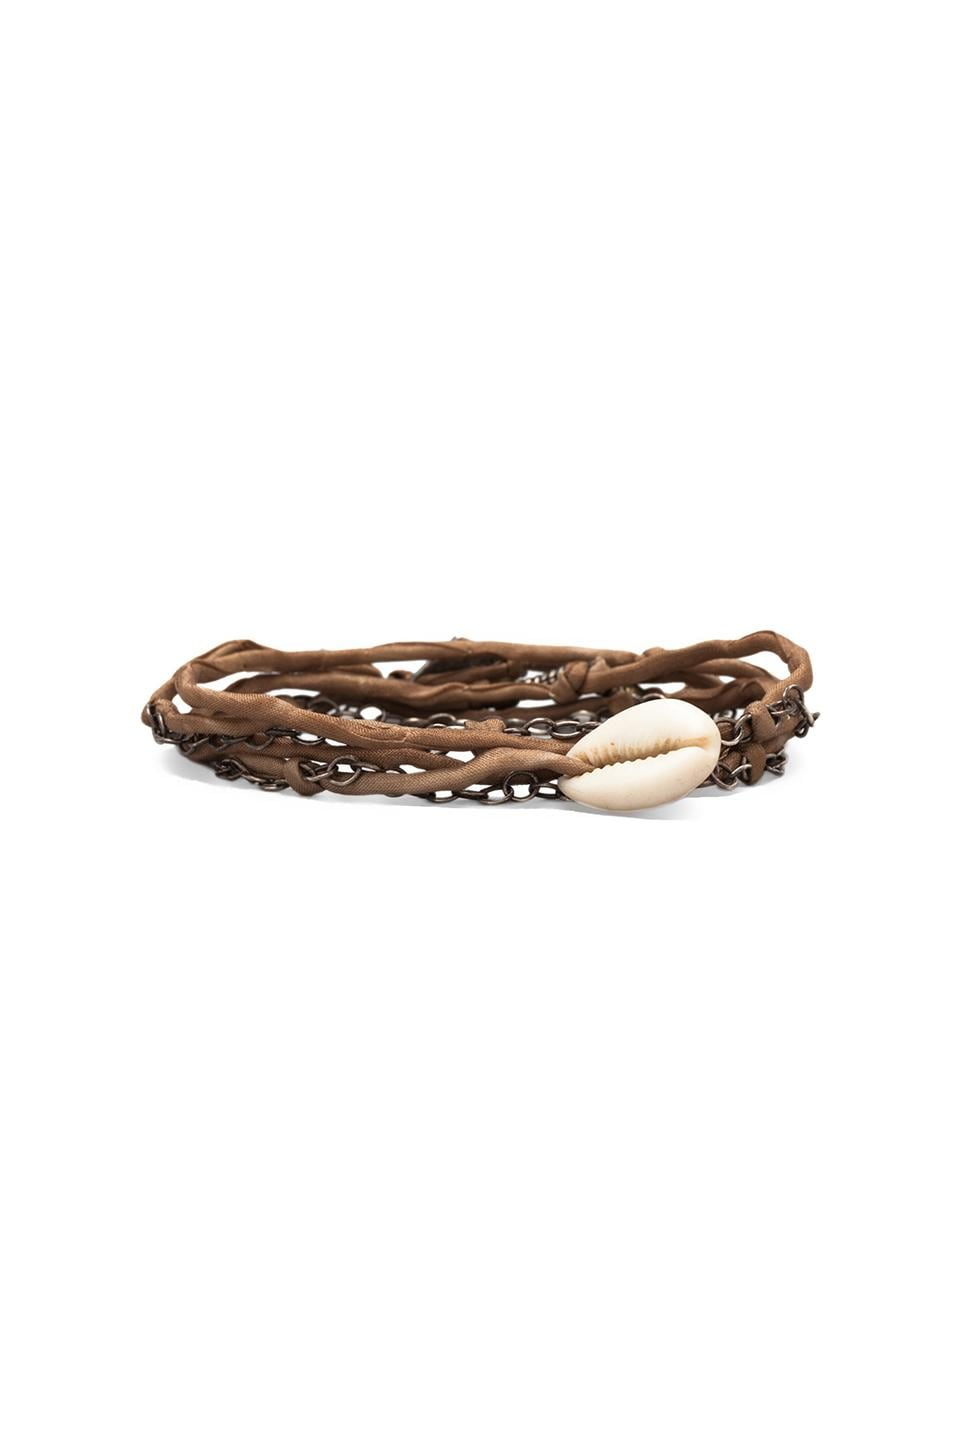 M.Cohen Silk Chain and Shell Wrap Bracelet in Tan